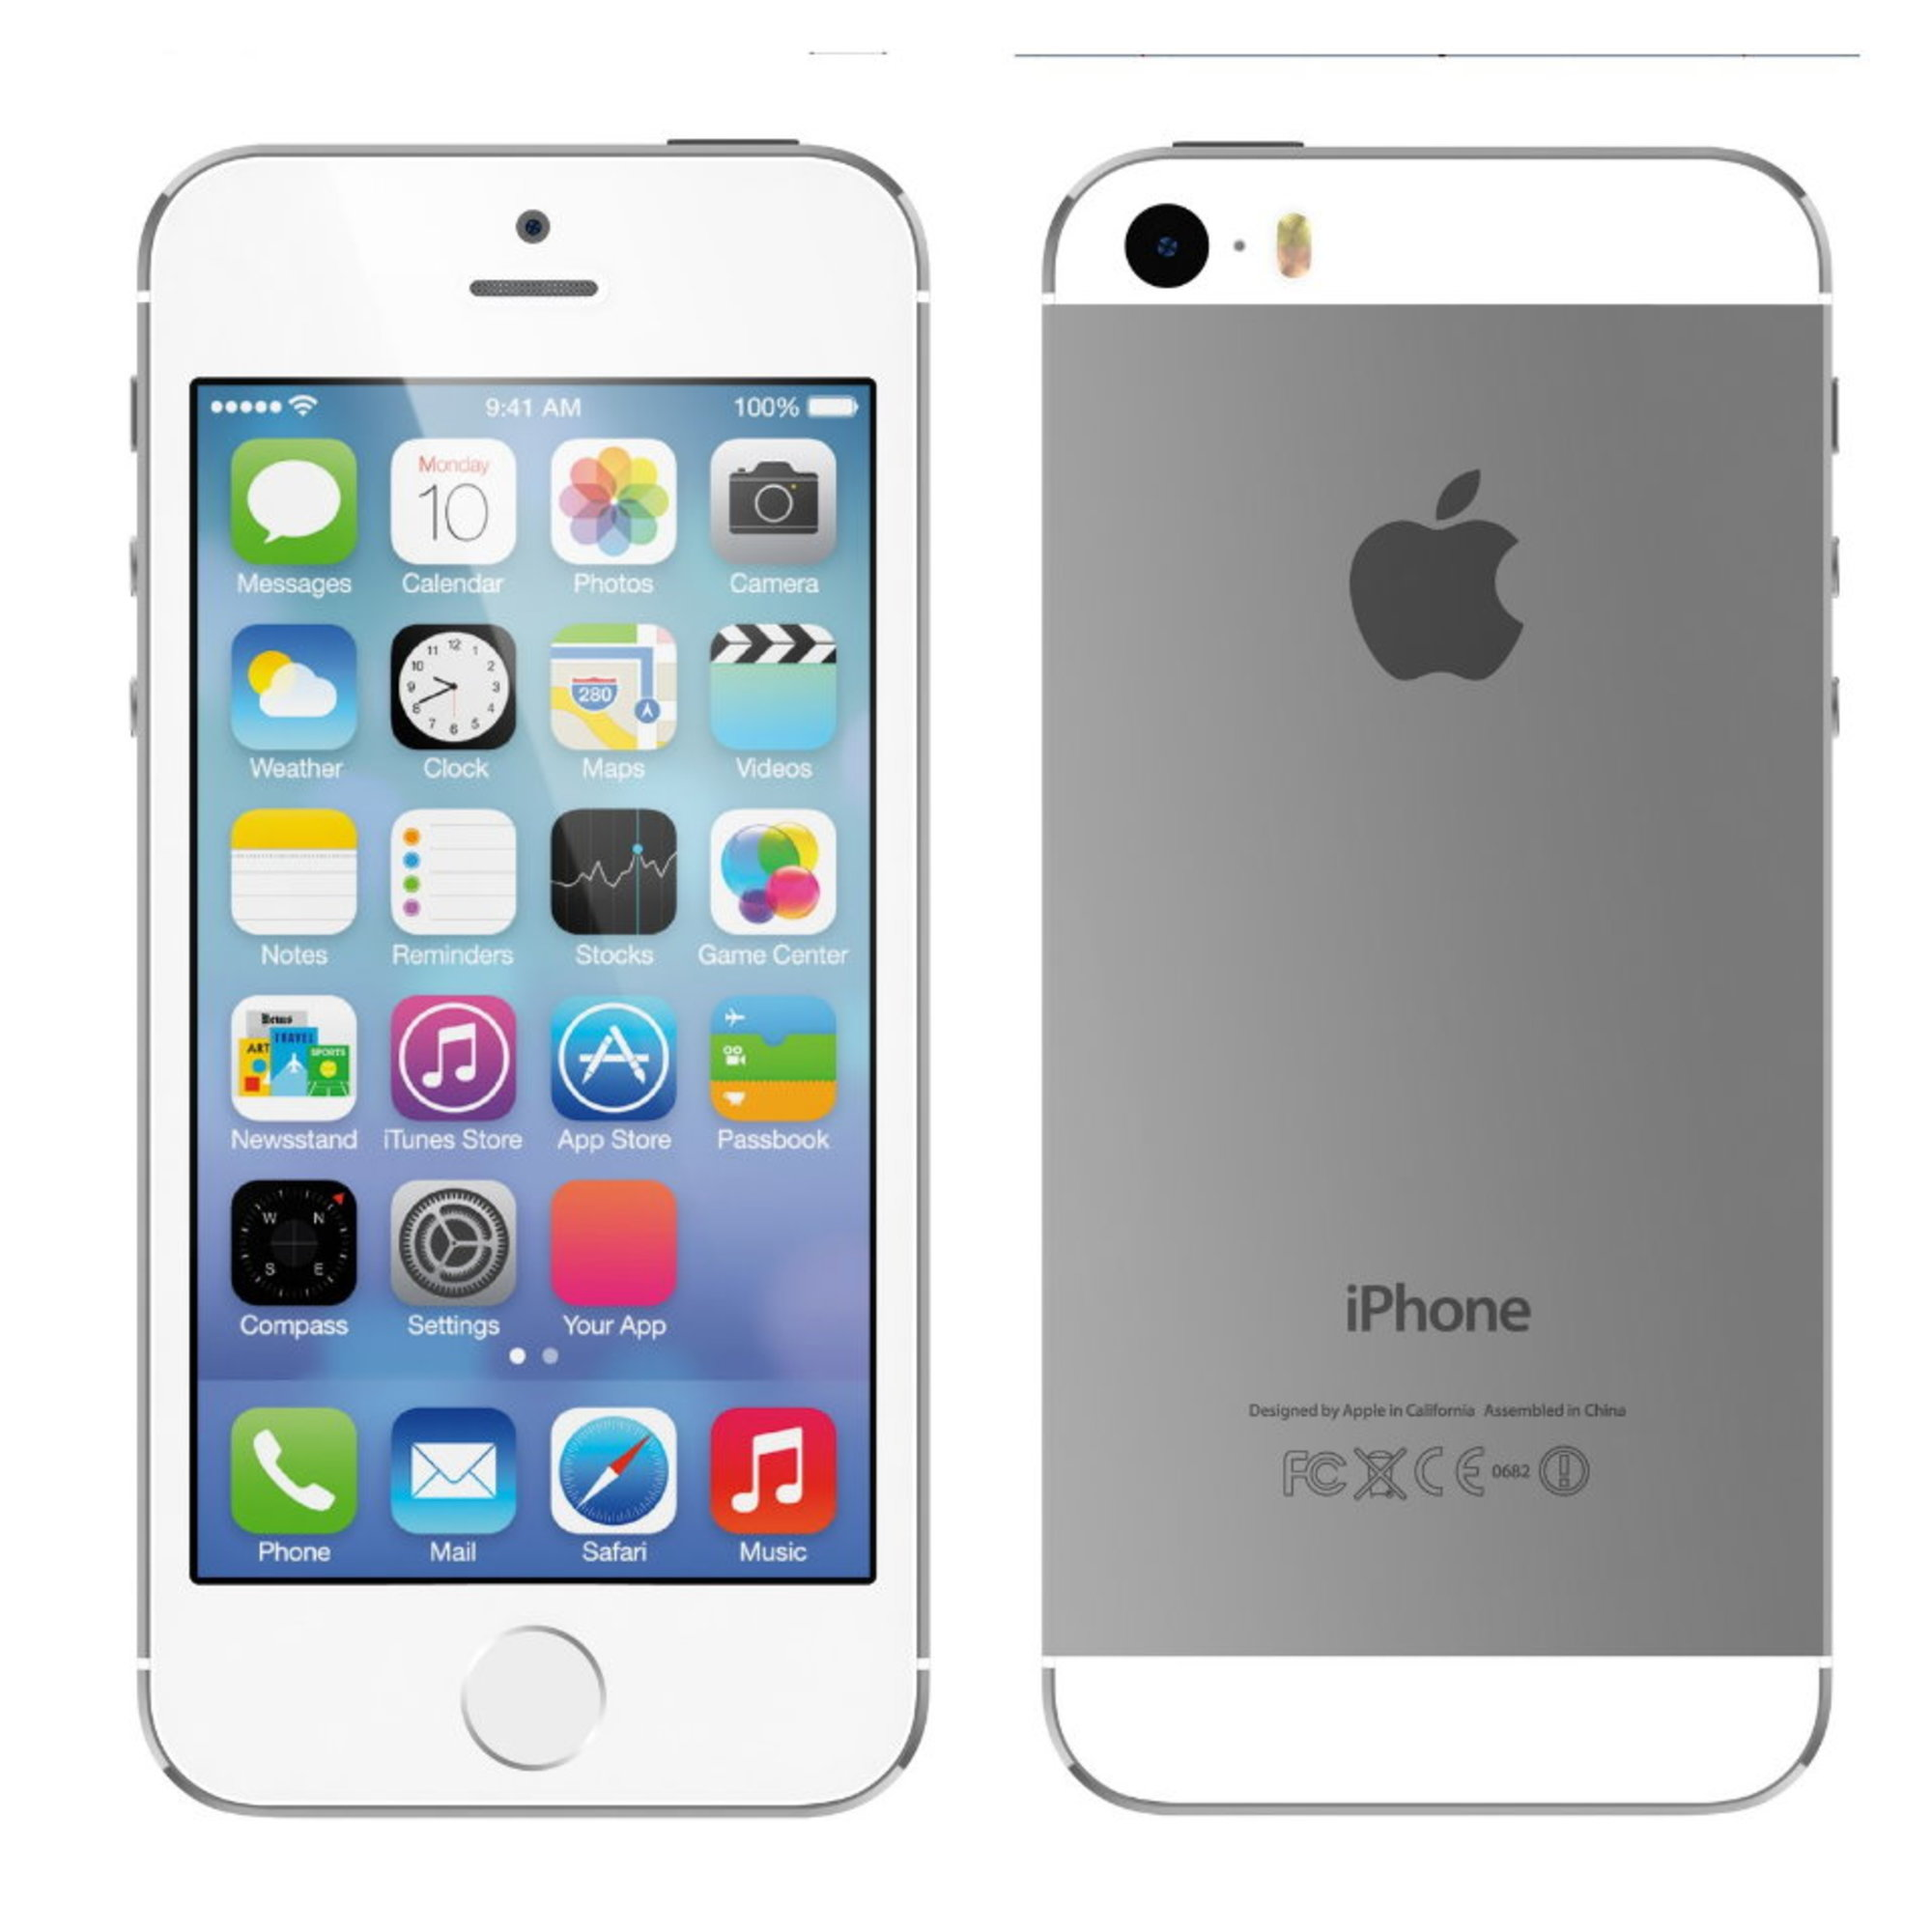 iphone 5s used unlocked apple iphone 5s 16gb unlocked gsm lte dualcore 8mp phone 1273